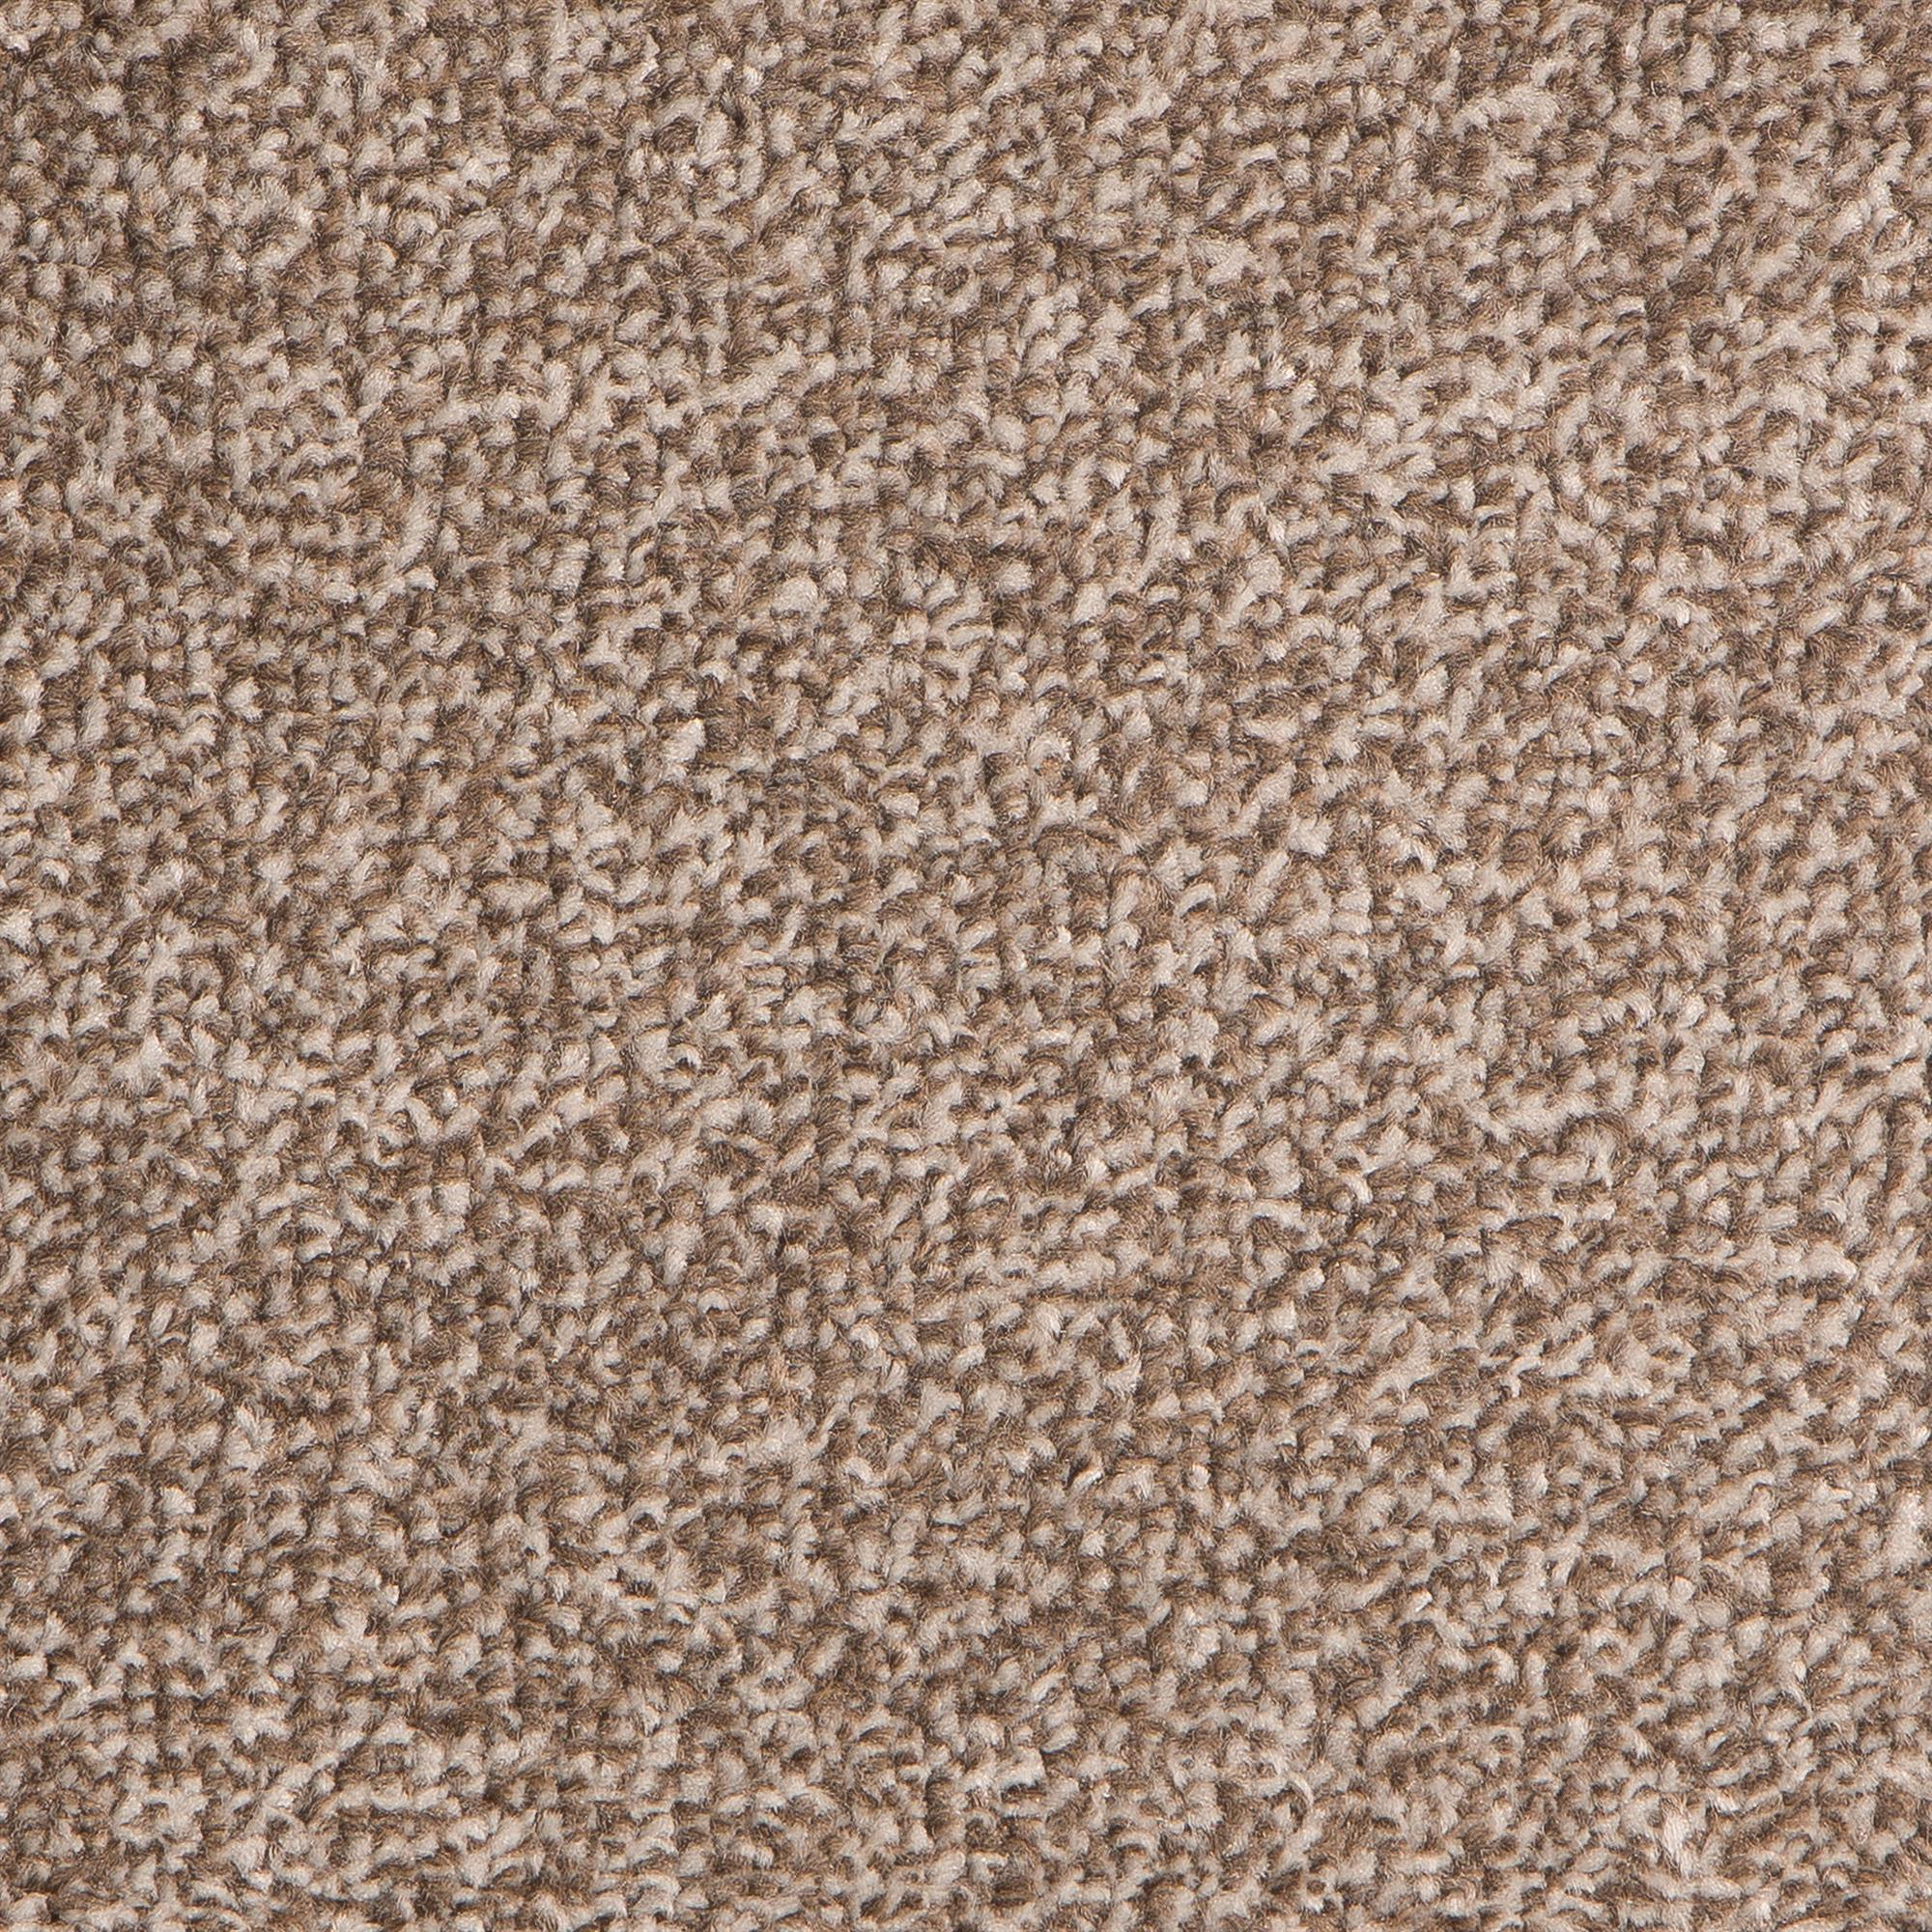 First Time Buyer Epic Carpet, Birch, swatch